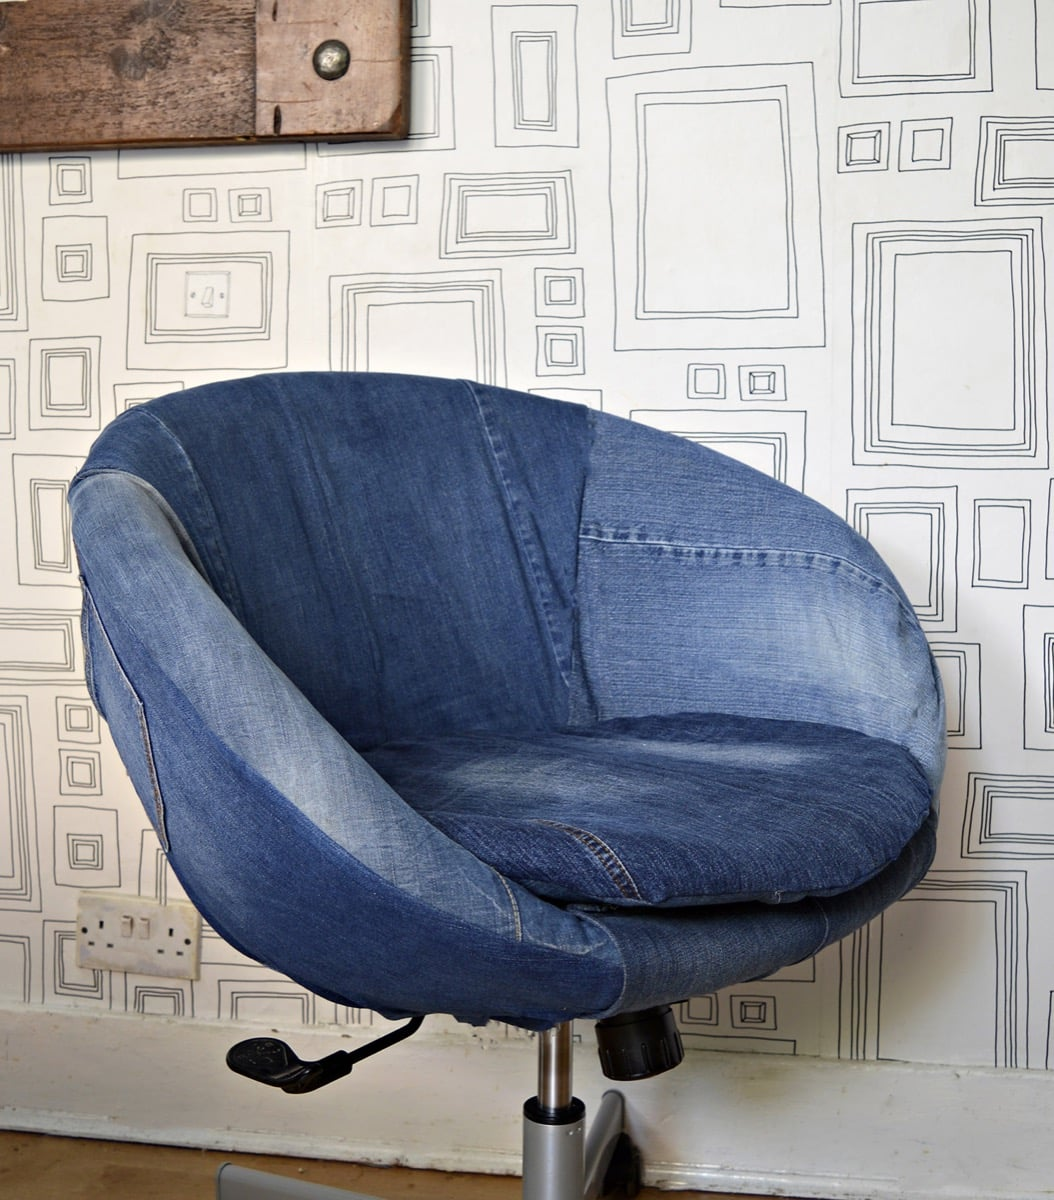 skruvsta swivel chair sling stacking patio threshold great transformation of an ikea using old jeans - hackers